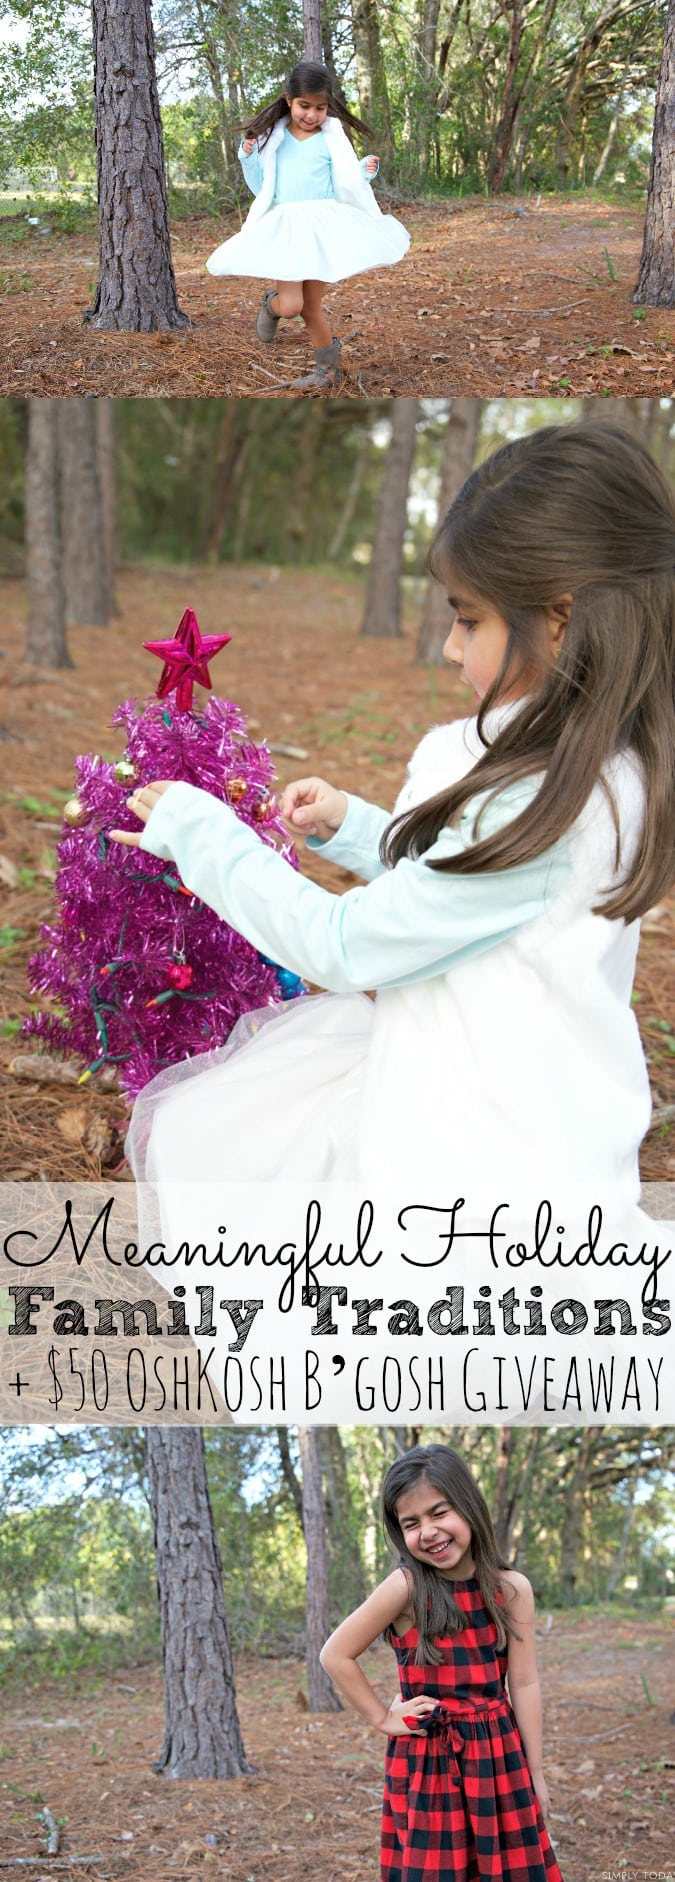 Meaningful Family Holiday Traditions + $50 OshKosh B'gosh Giveaway - simplytodaylife.com